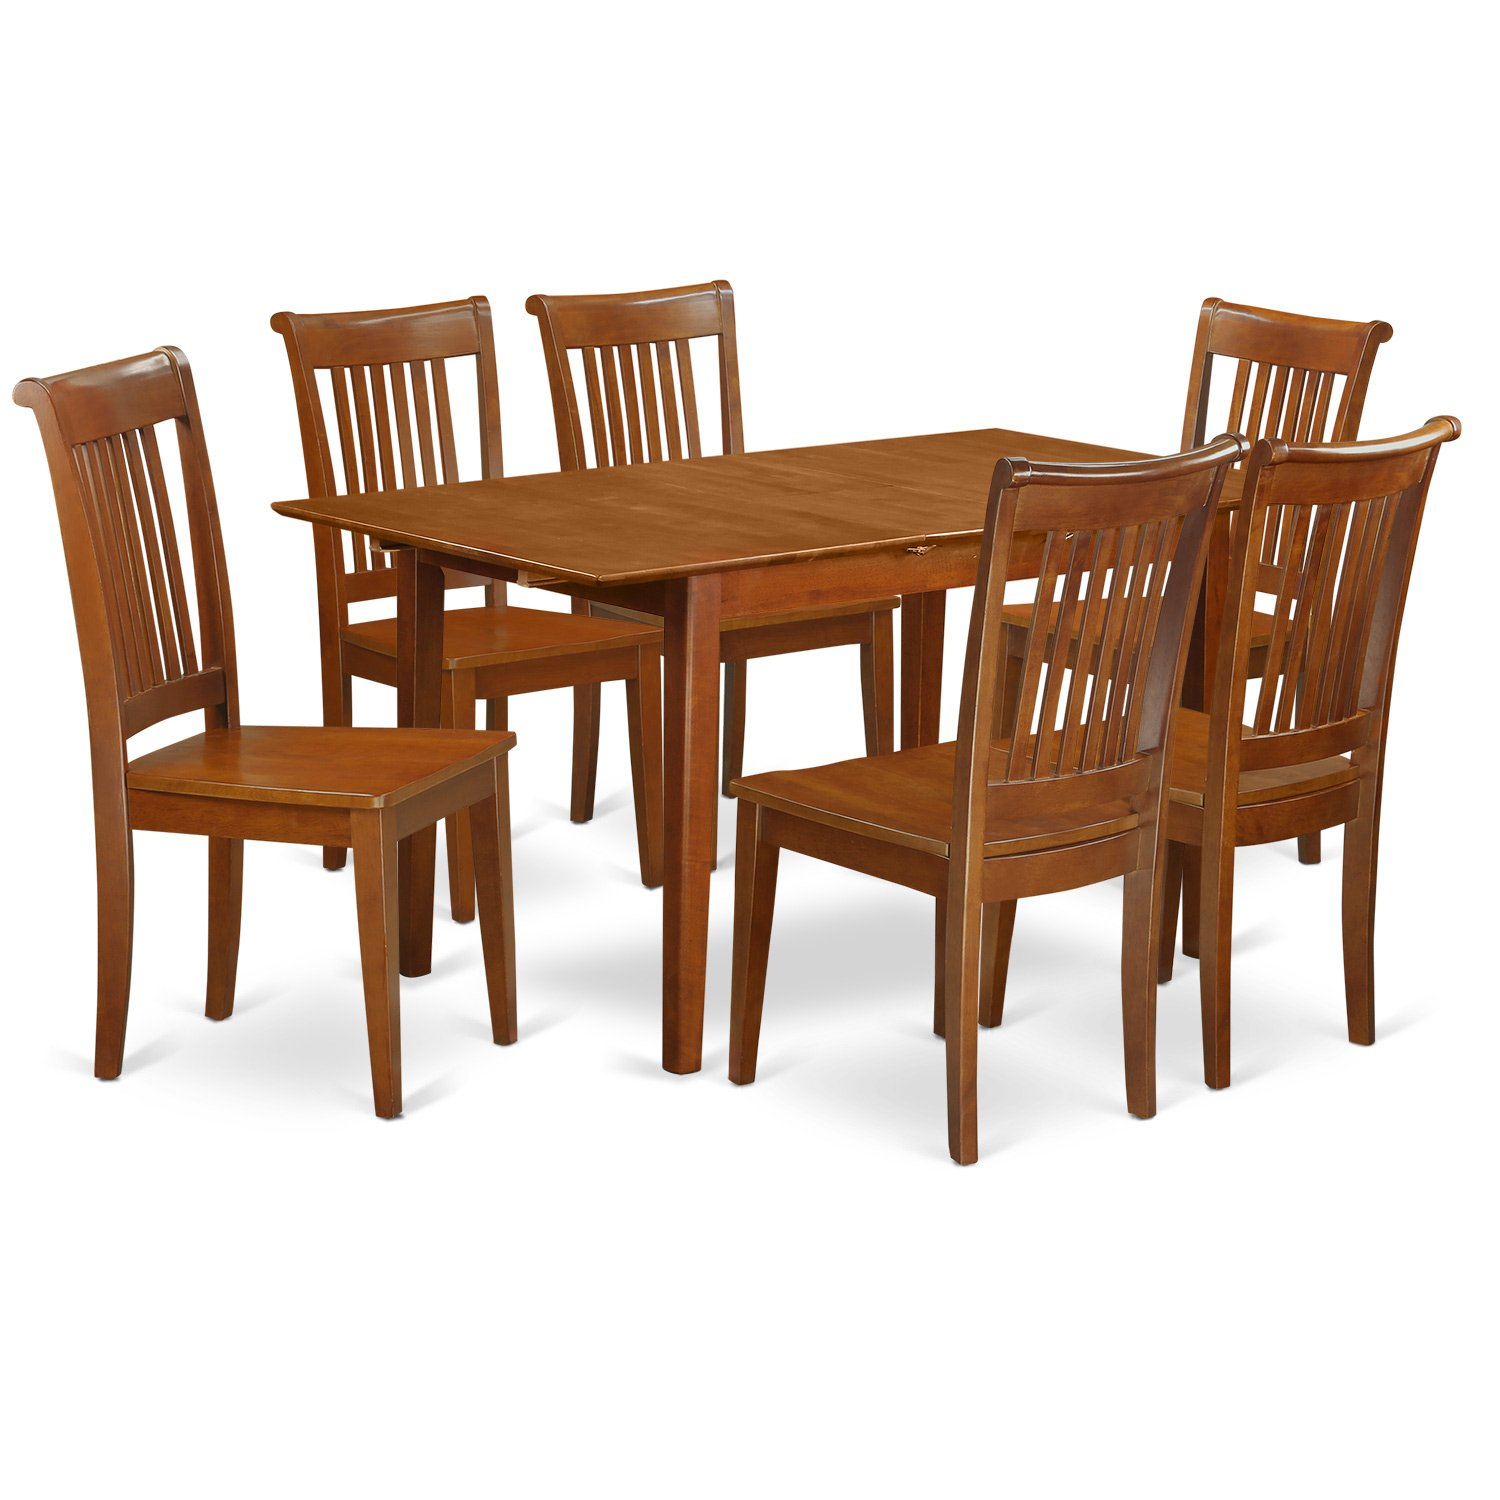 PSPO7-SBR-W 7 Pc set Rectangular Kitchen Table having 12 Leaf and 6 Wood Dinette Chairs in Saddle Brown